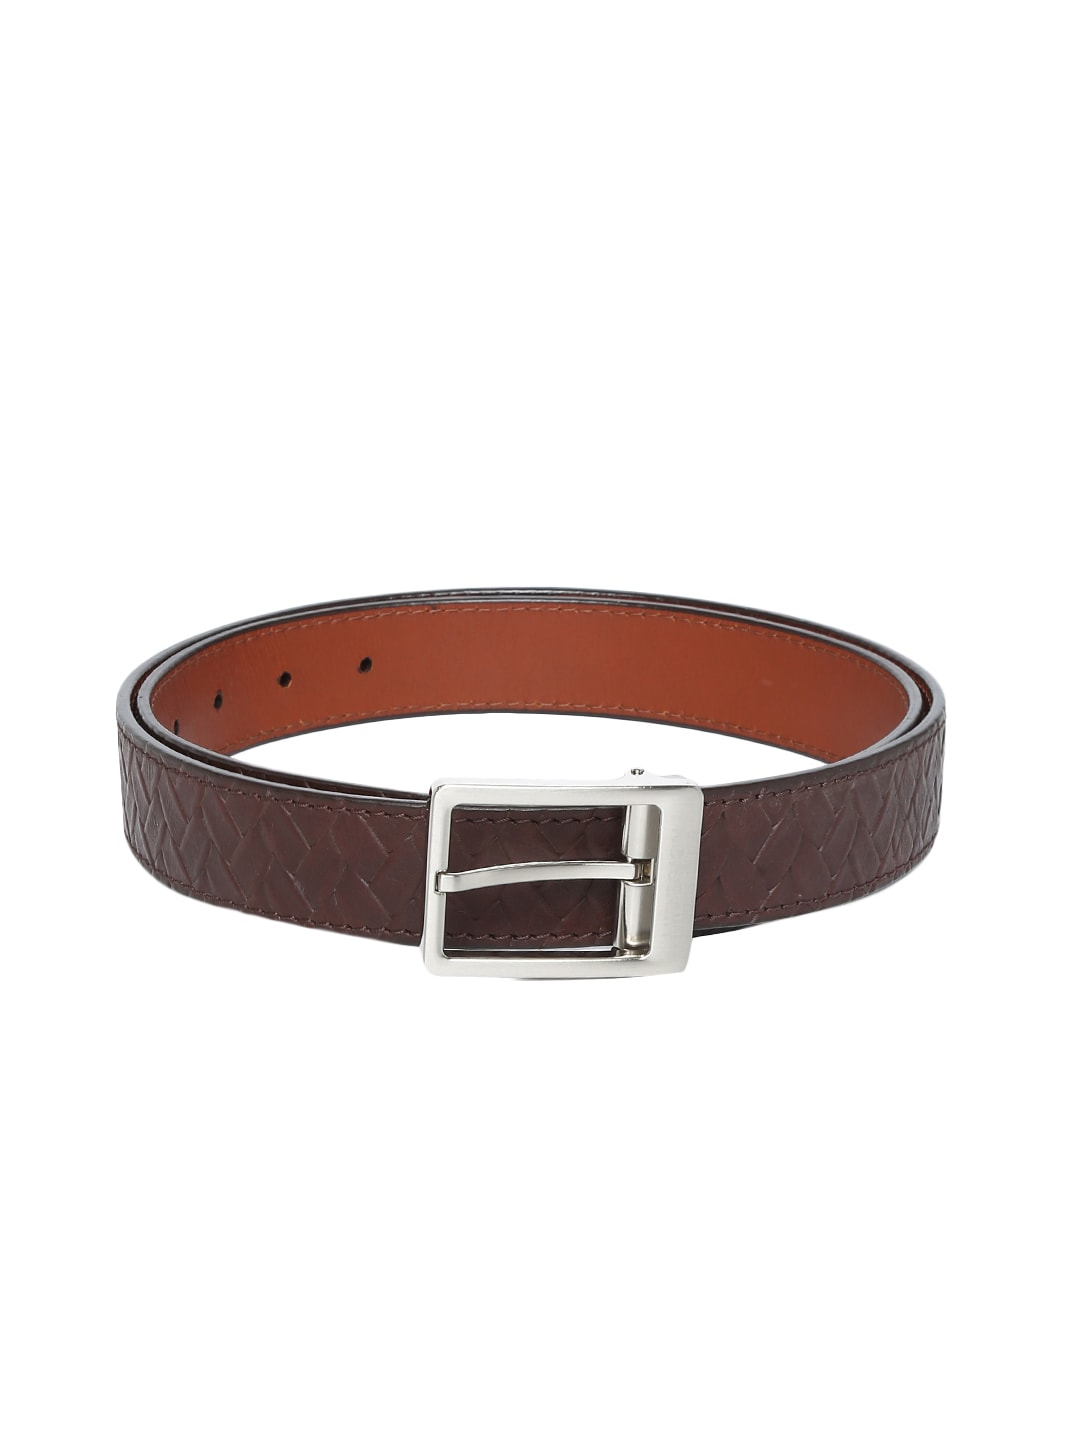 778a256e54b Belts - Buy Belts for Men   Women Online in India at Best Price